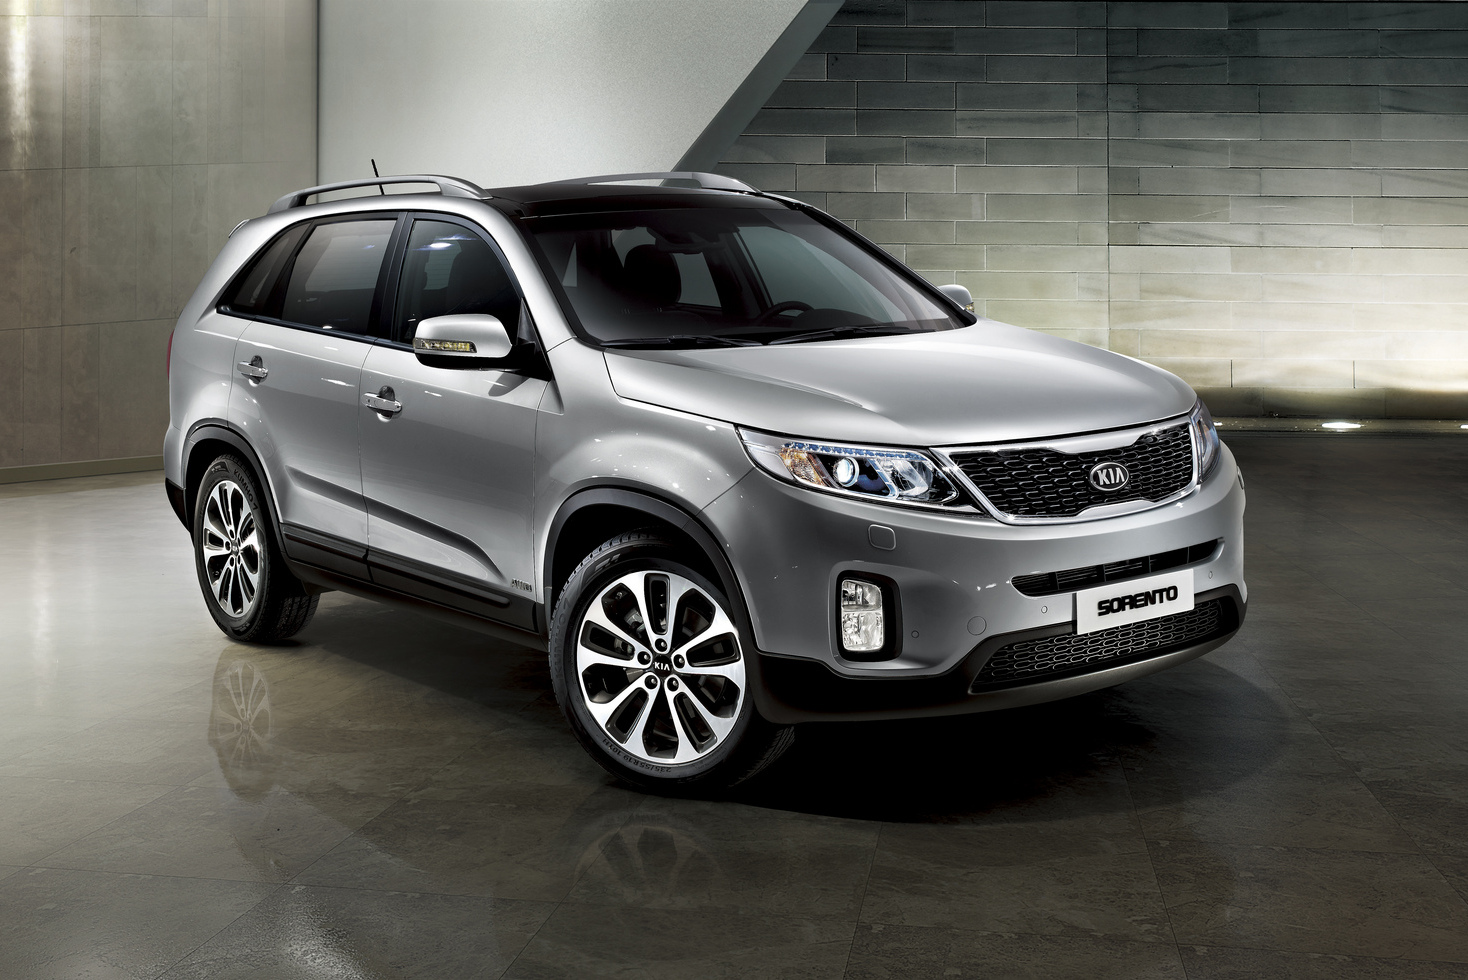 2015 Kia Sorento Information And Photos Zombiedrive